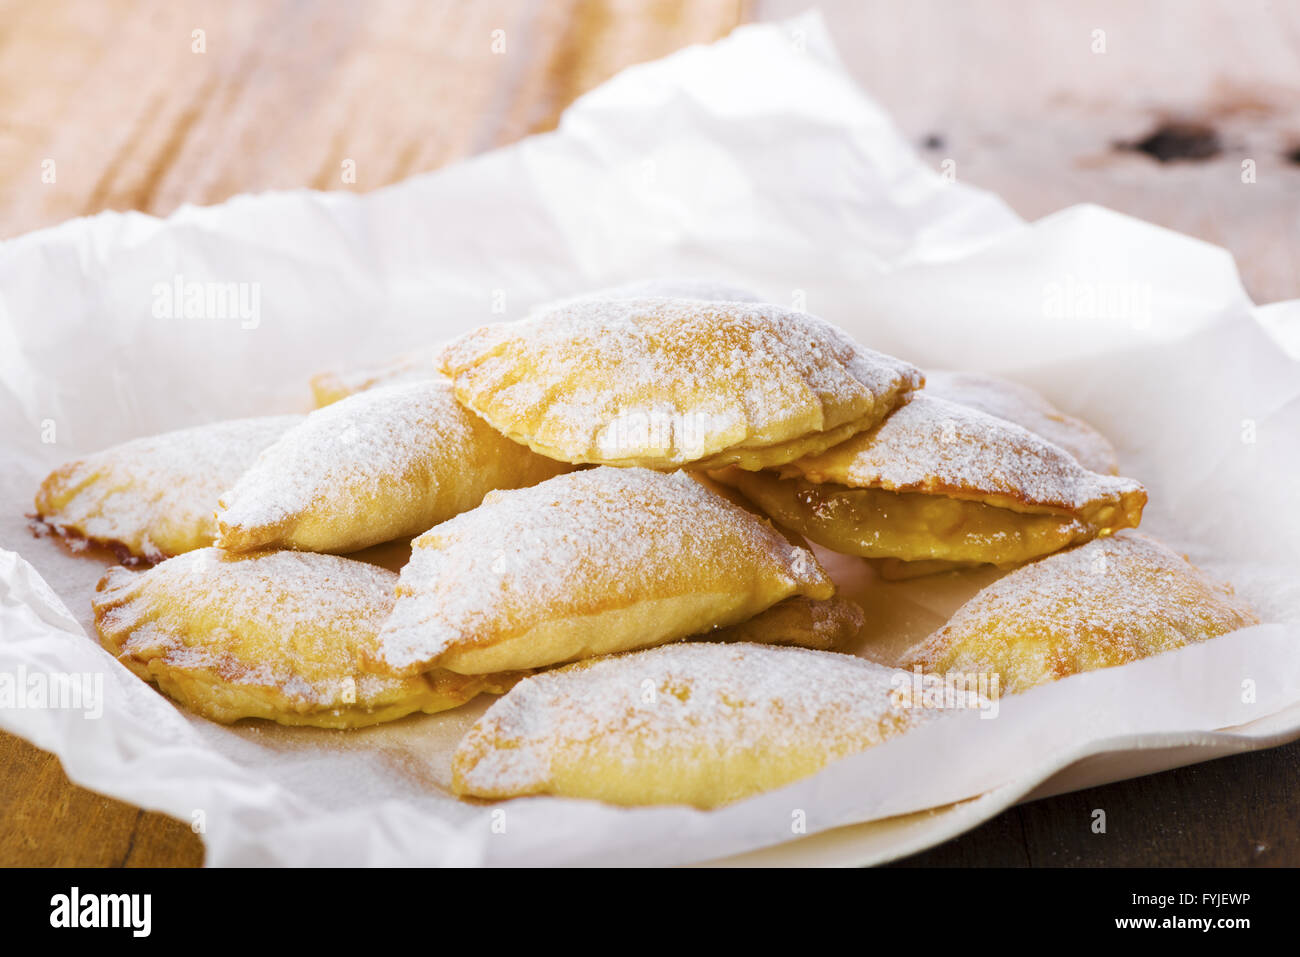 Delicious Cookies on Plate with White Paper Stock Photo